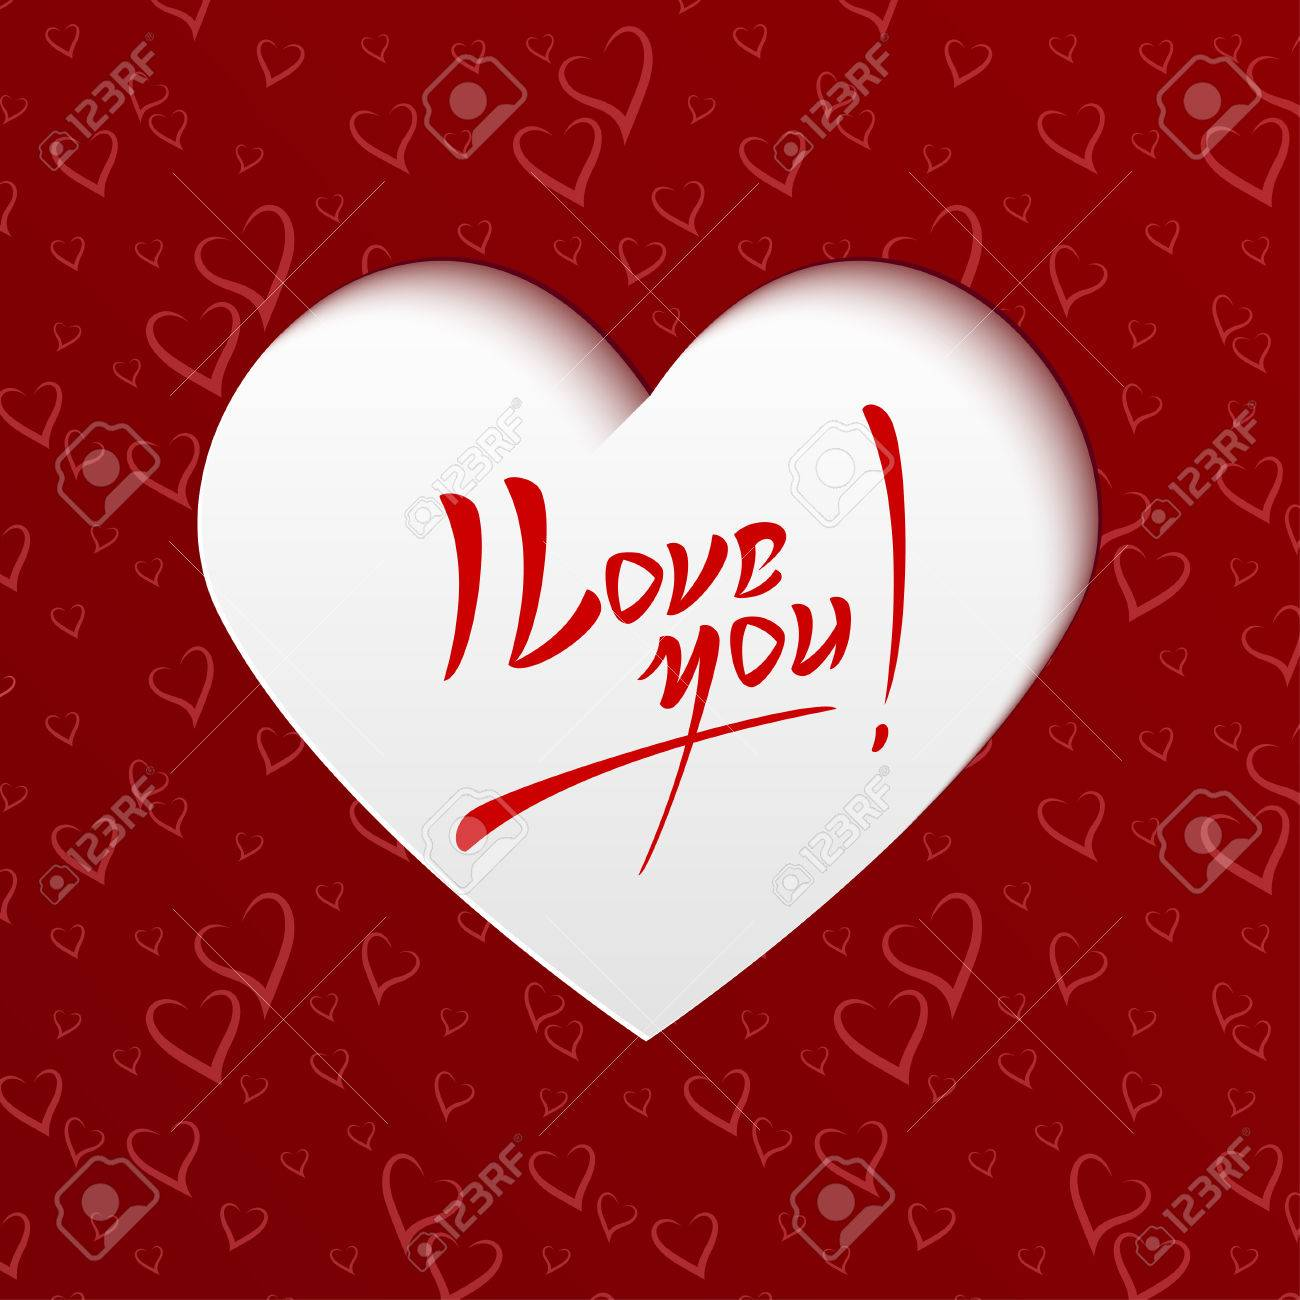 I Love You Valentines Day Hand Lettering Greeting Card On Paper